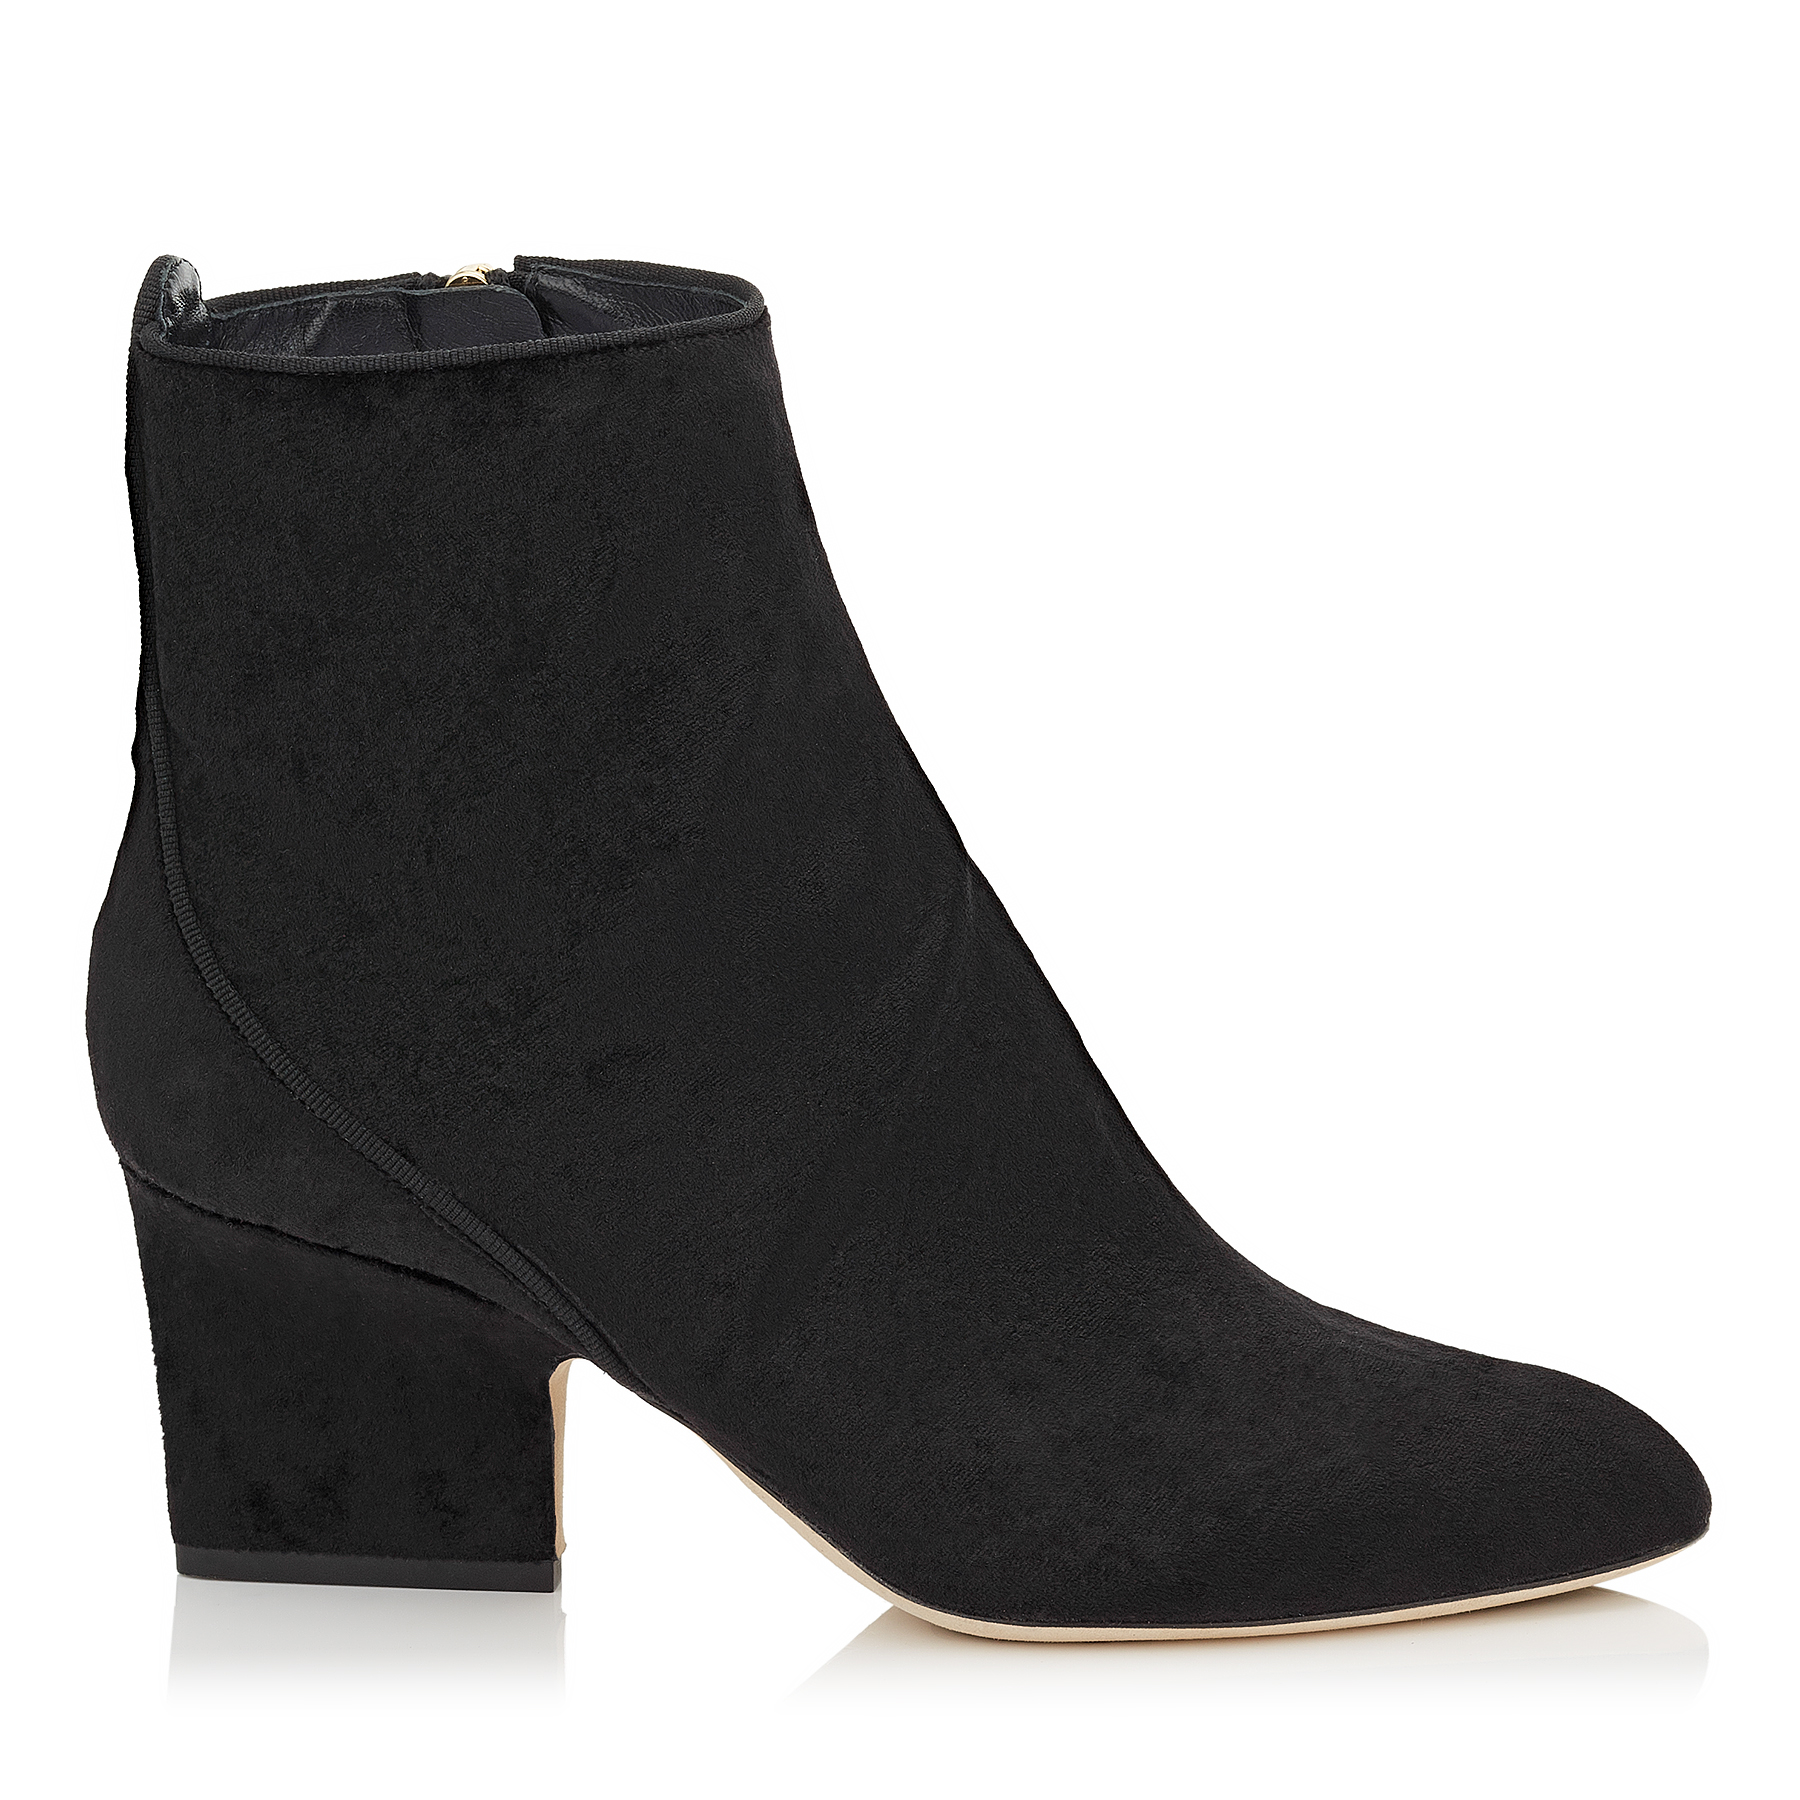 AUTUMN 65 Black Crushed Velvet Round Toe Booties by Jimmy Choo